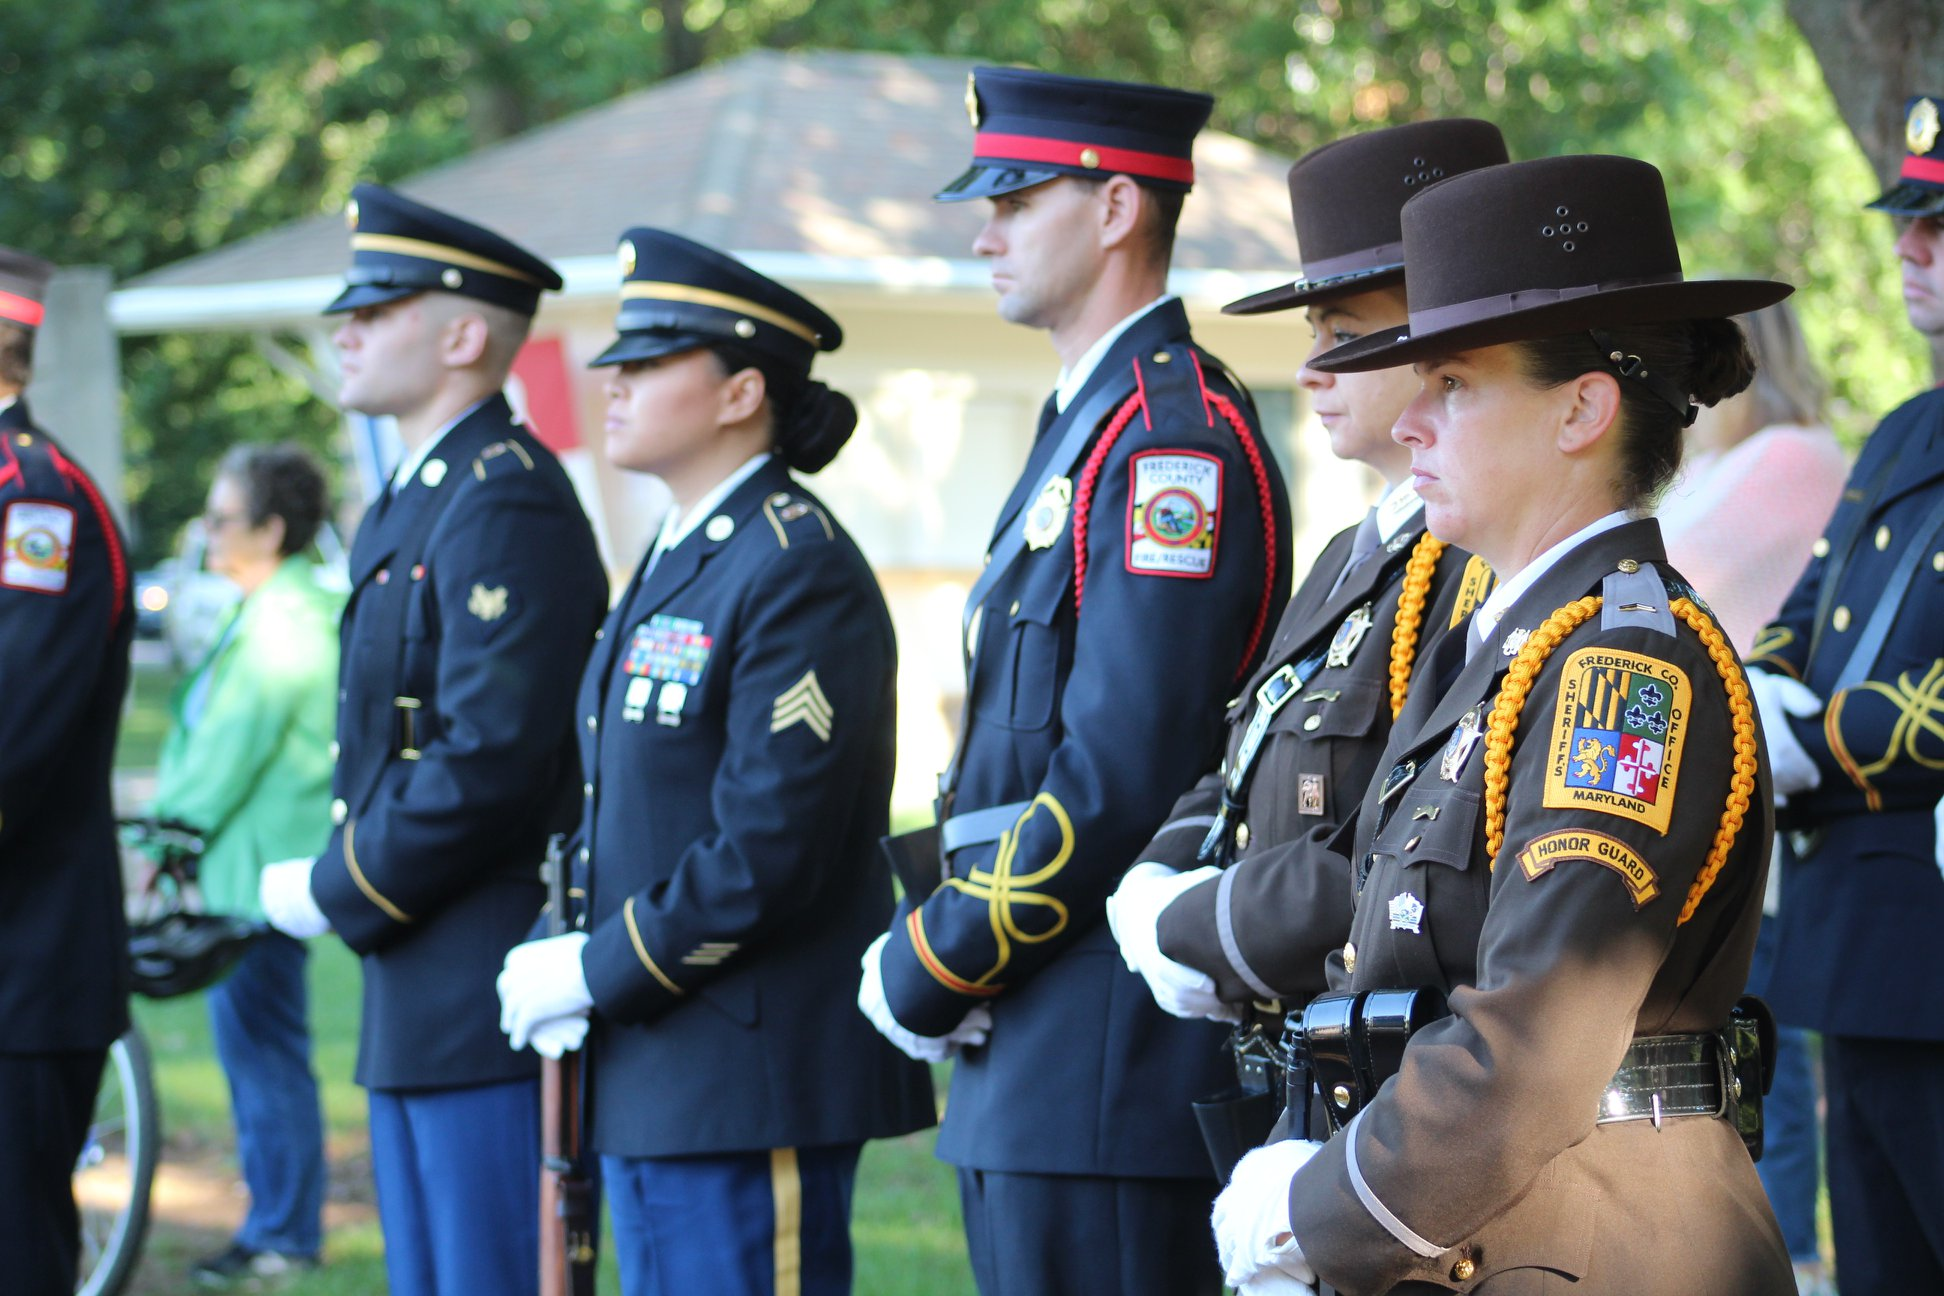 Local Government And Military Hold 9/11 20th Anniversary Remembrance Ceremony